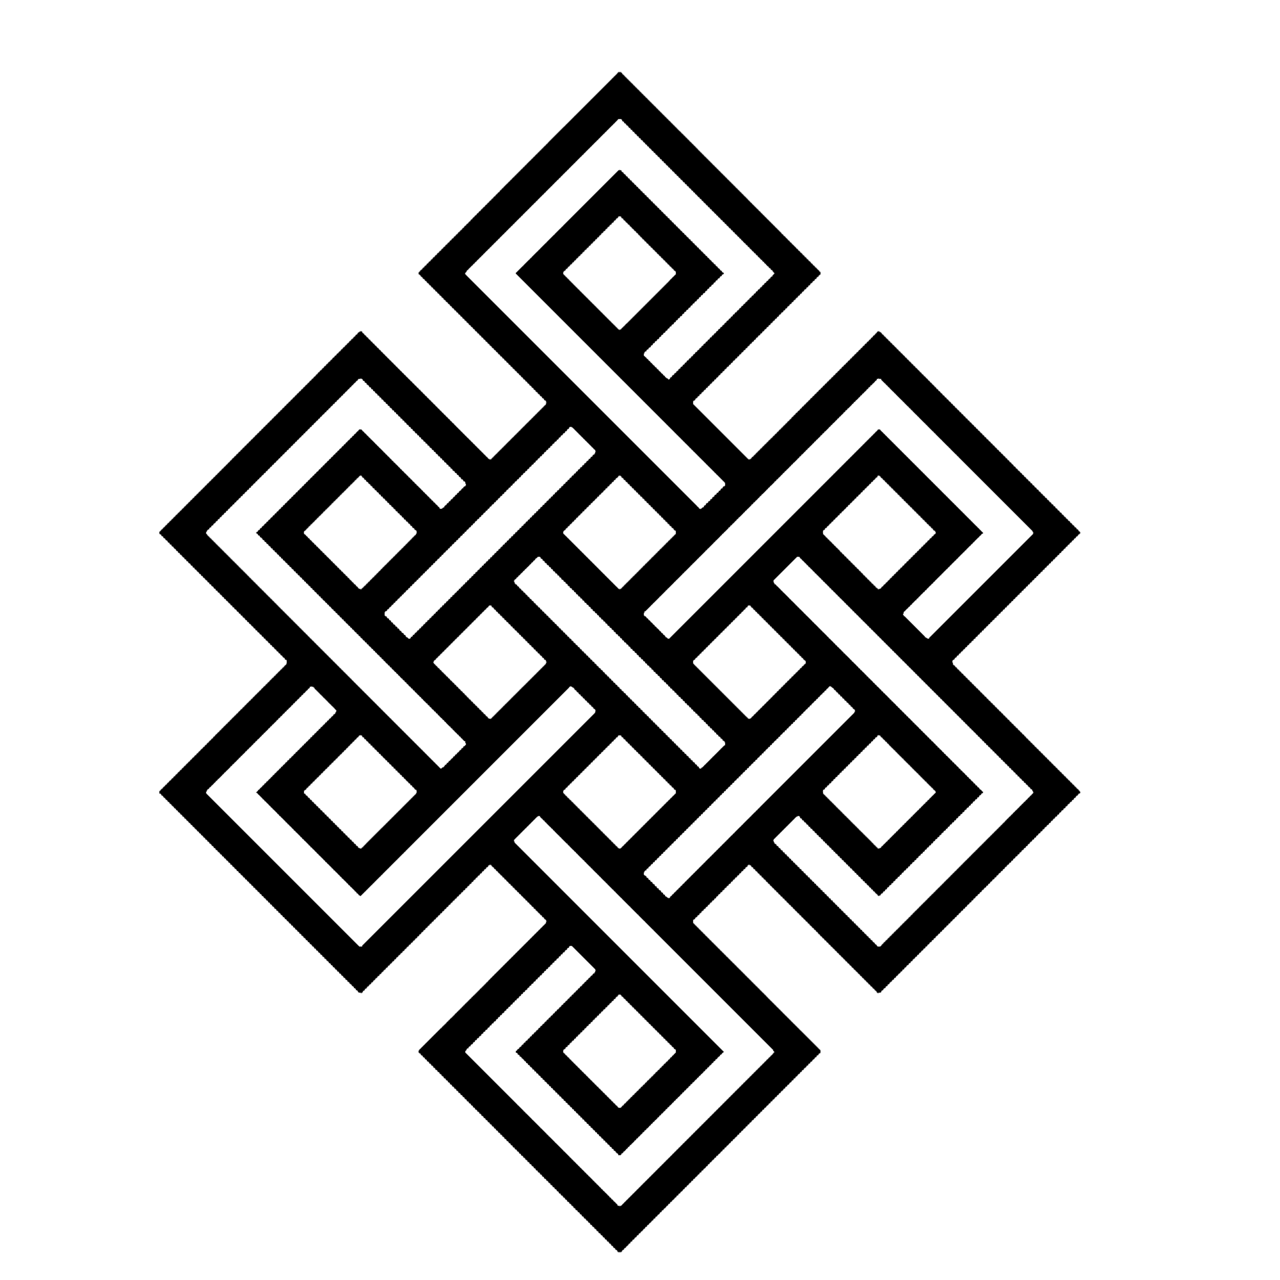 Buddhist symbols for rebirth gallery symbol and sign ideas dopatonin the endless knot one of the eight sacred emblems of dopatonin the endless knot one buycottarizona